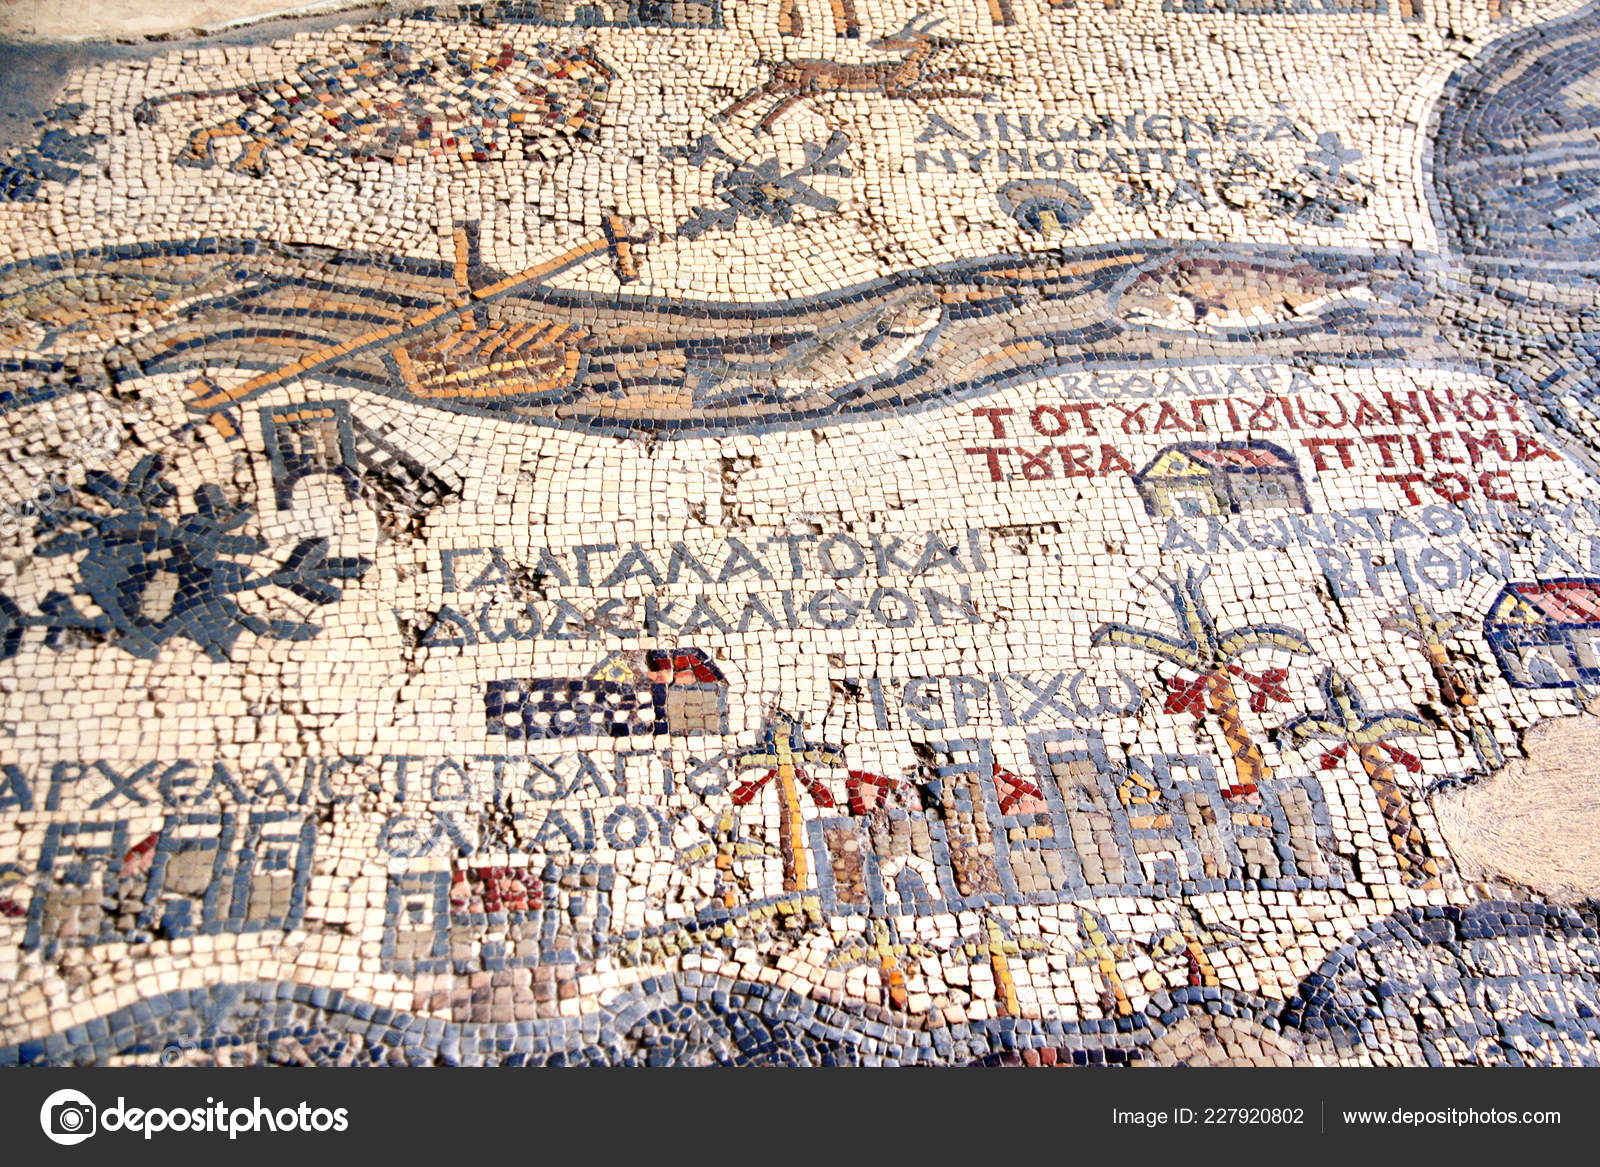 Fragment Ancient Floor Byzantine Mosaic Map Holy Land Floor ... on map of europe holy land, bible map holy land, printable map of holy land, map of holy land today, map of holy land during joshua, large map of holy land, map of jonah's time, map holy land israel, map of bethlehem, modern map of holy land, map holy land in jesus day, map of christian holy land, map of the holy land, map world holy land, map of holy land jesus, cities in the holy land, map of jewish holy land, model of jerusalem holy land, current map of holy land, biblical map holy land,